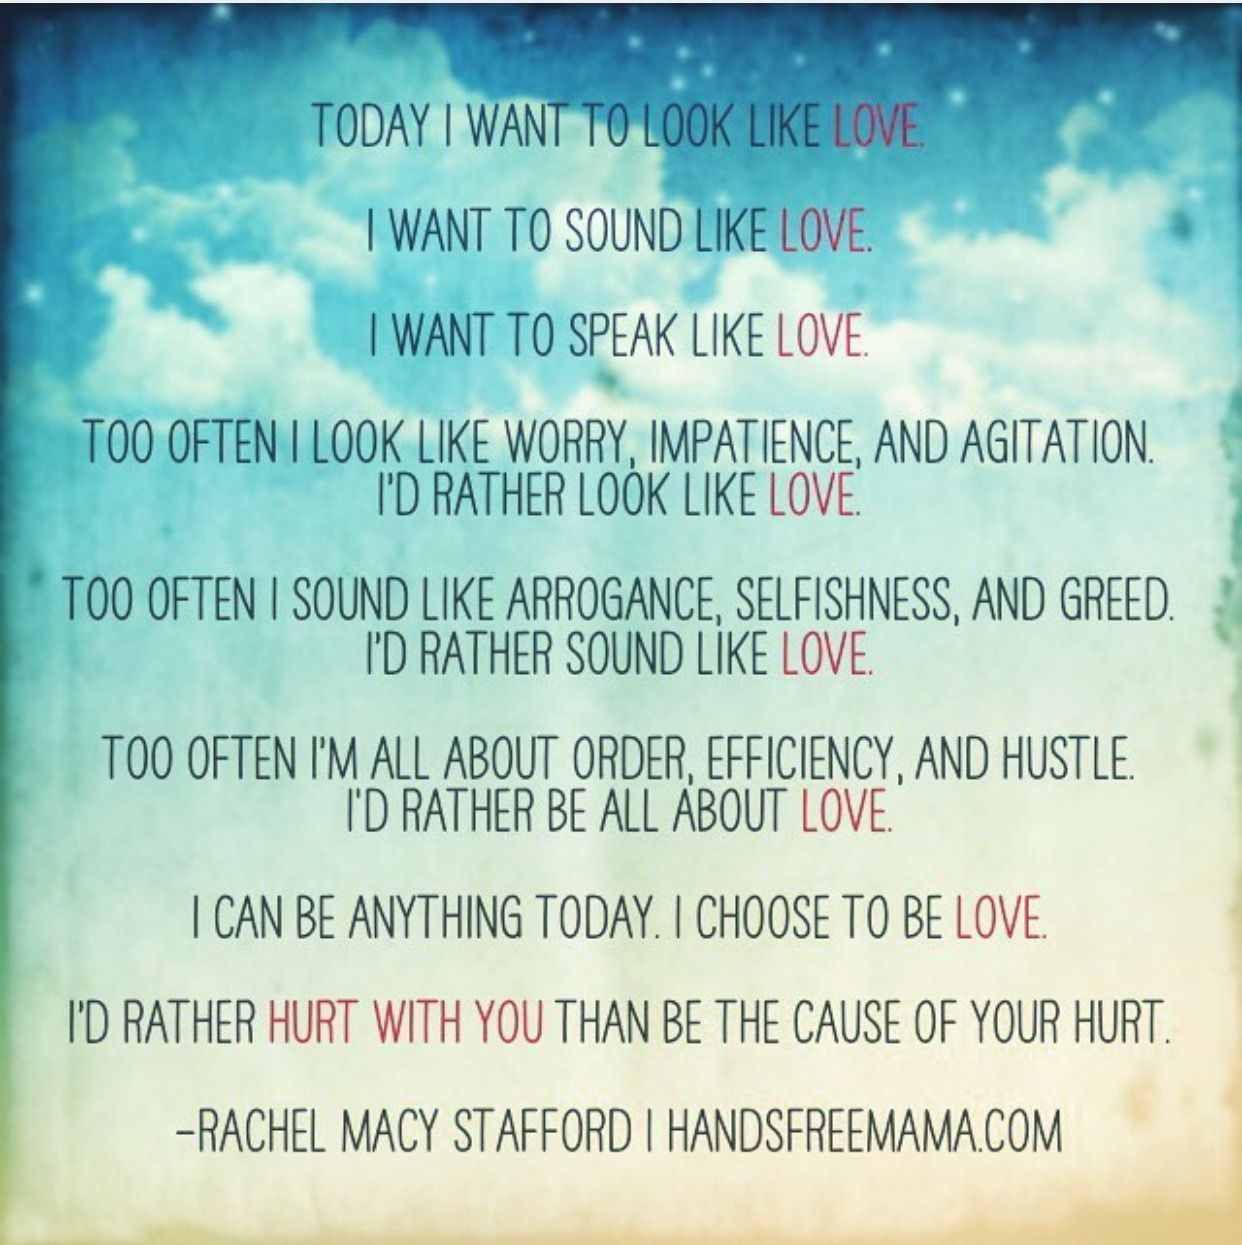 Hands Free, love, today  Only love today, Today quotes, Work quotes